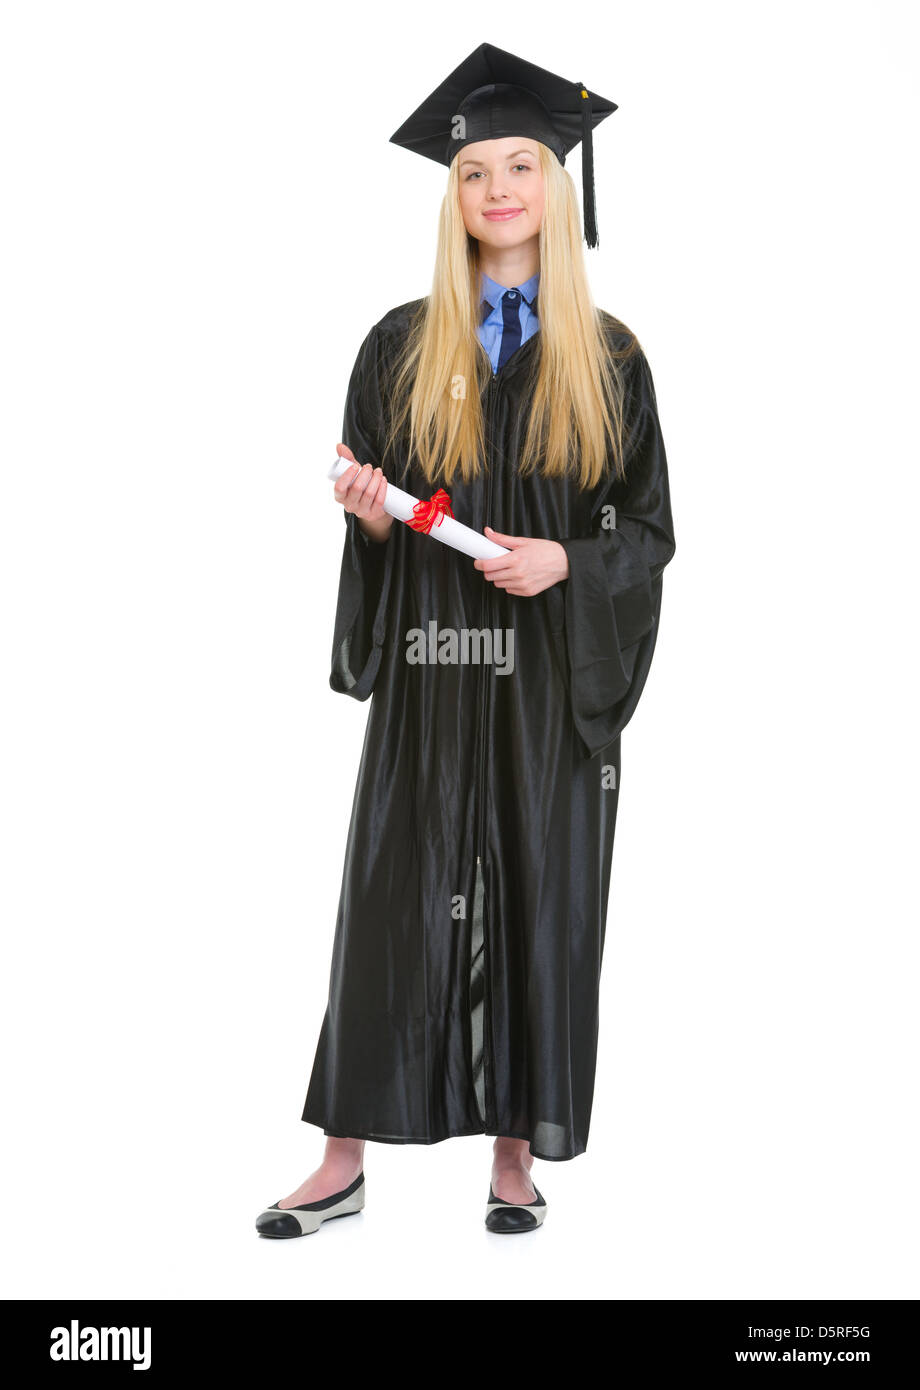 Full length portrait of happy young woman in graduation gown with ...